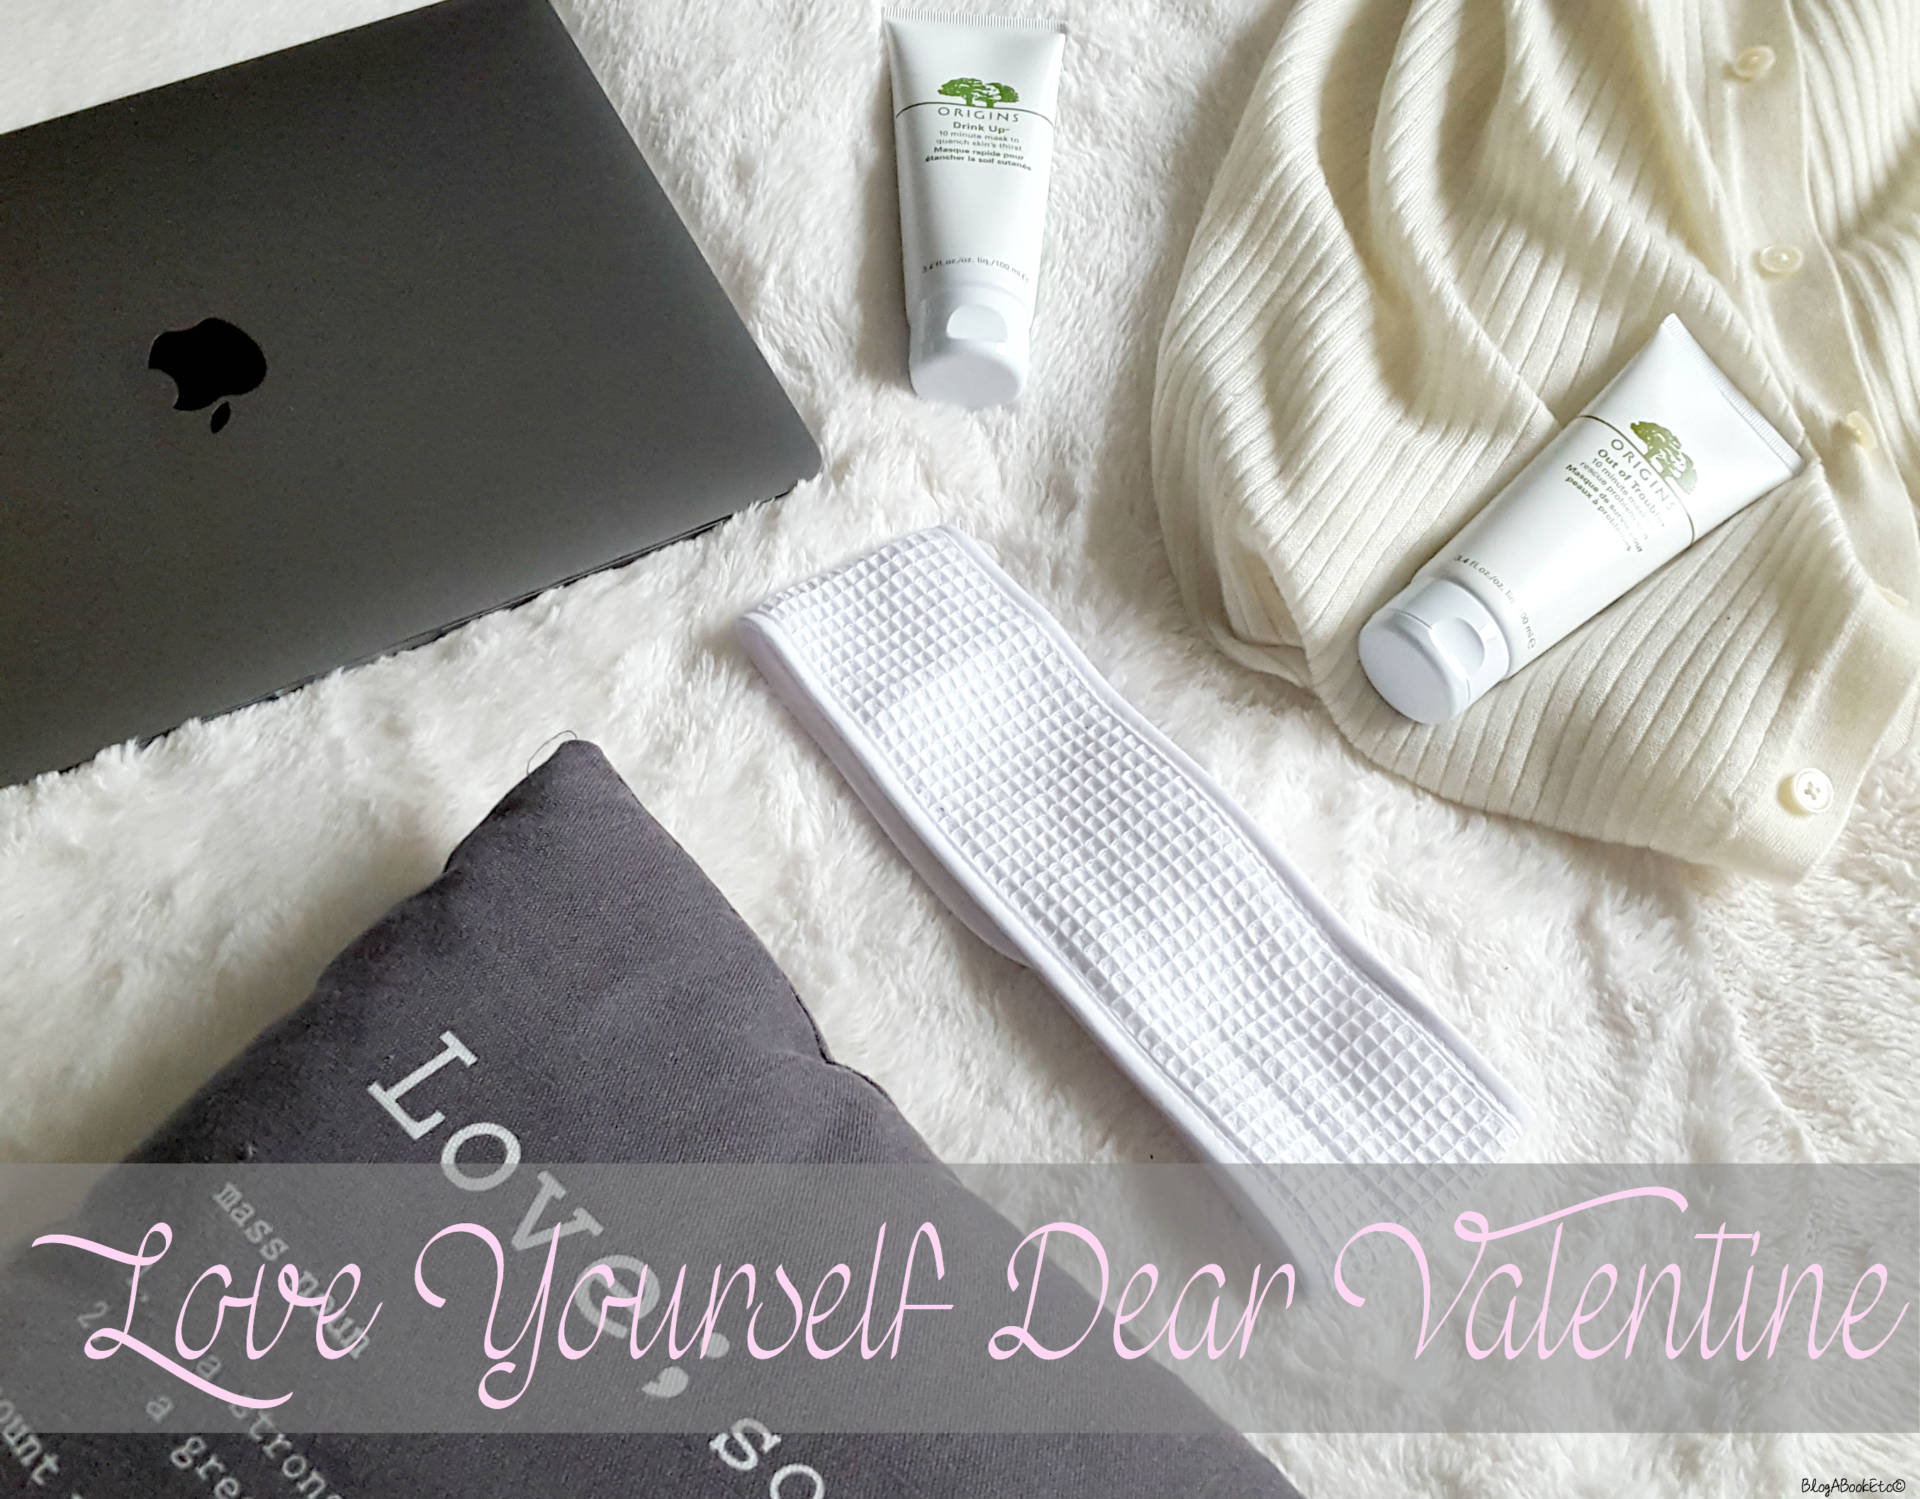 Love Yourself, Dear Valentine, Valentine's Day, Valentine, Romance, Love, Self Care, Self Love, Love Yourself, Apple, MacBook Pro, Origins, Skin Care, skincare, beauty, Blog A Book Etc, Fay